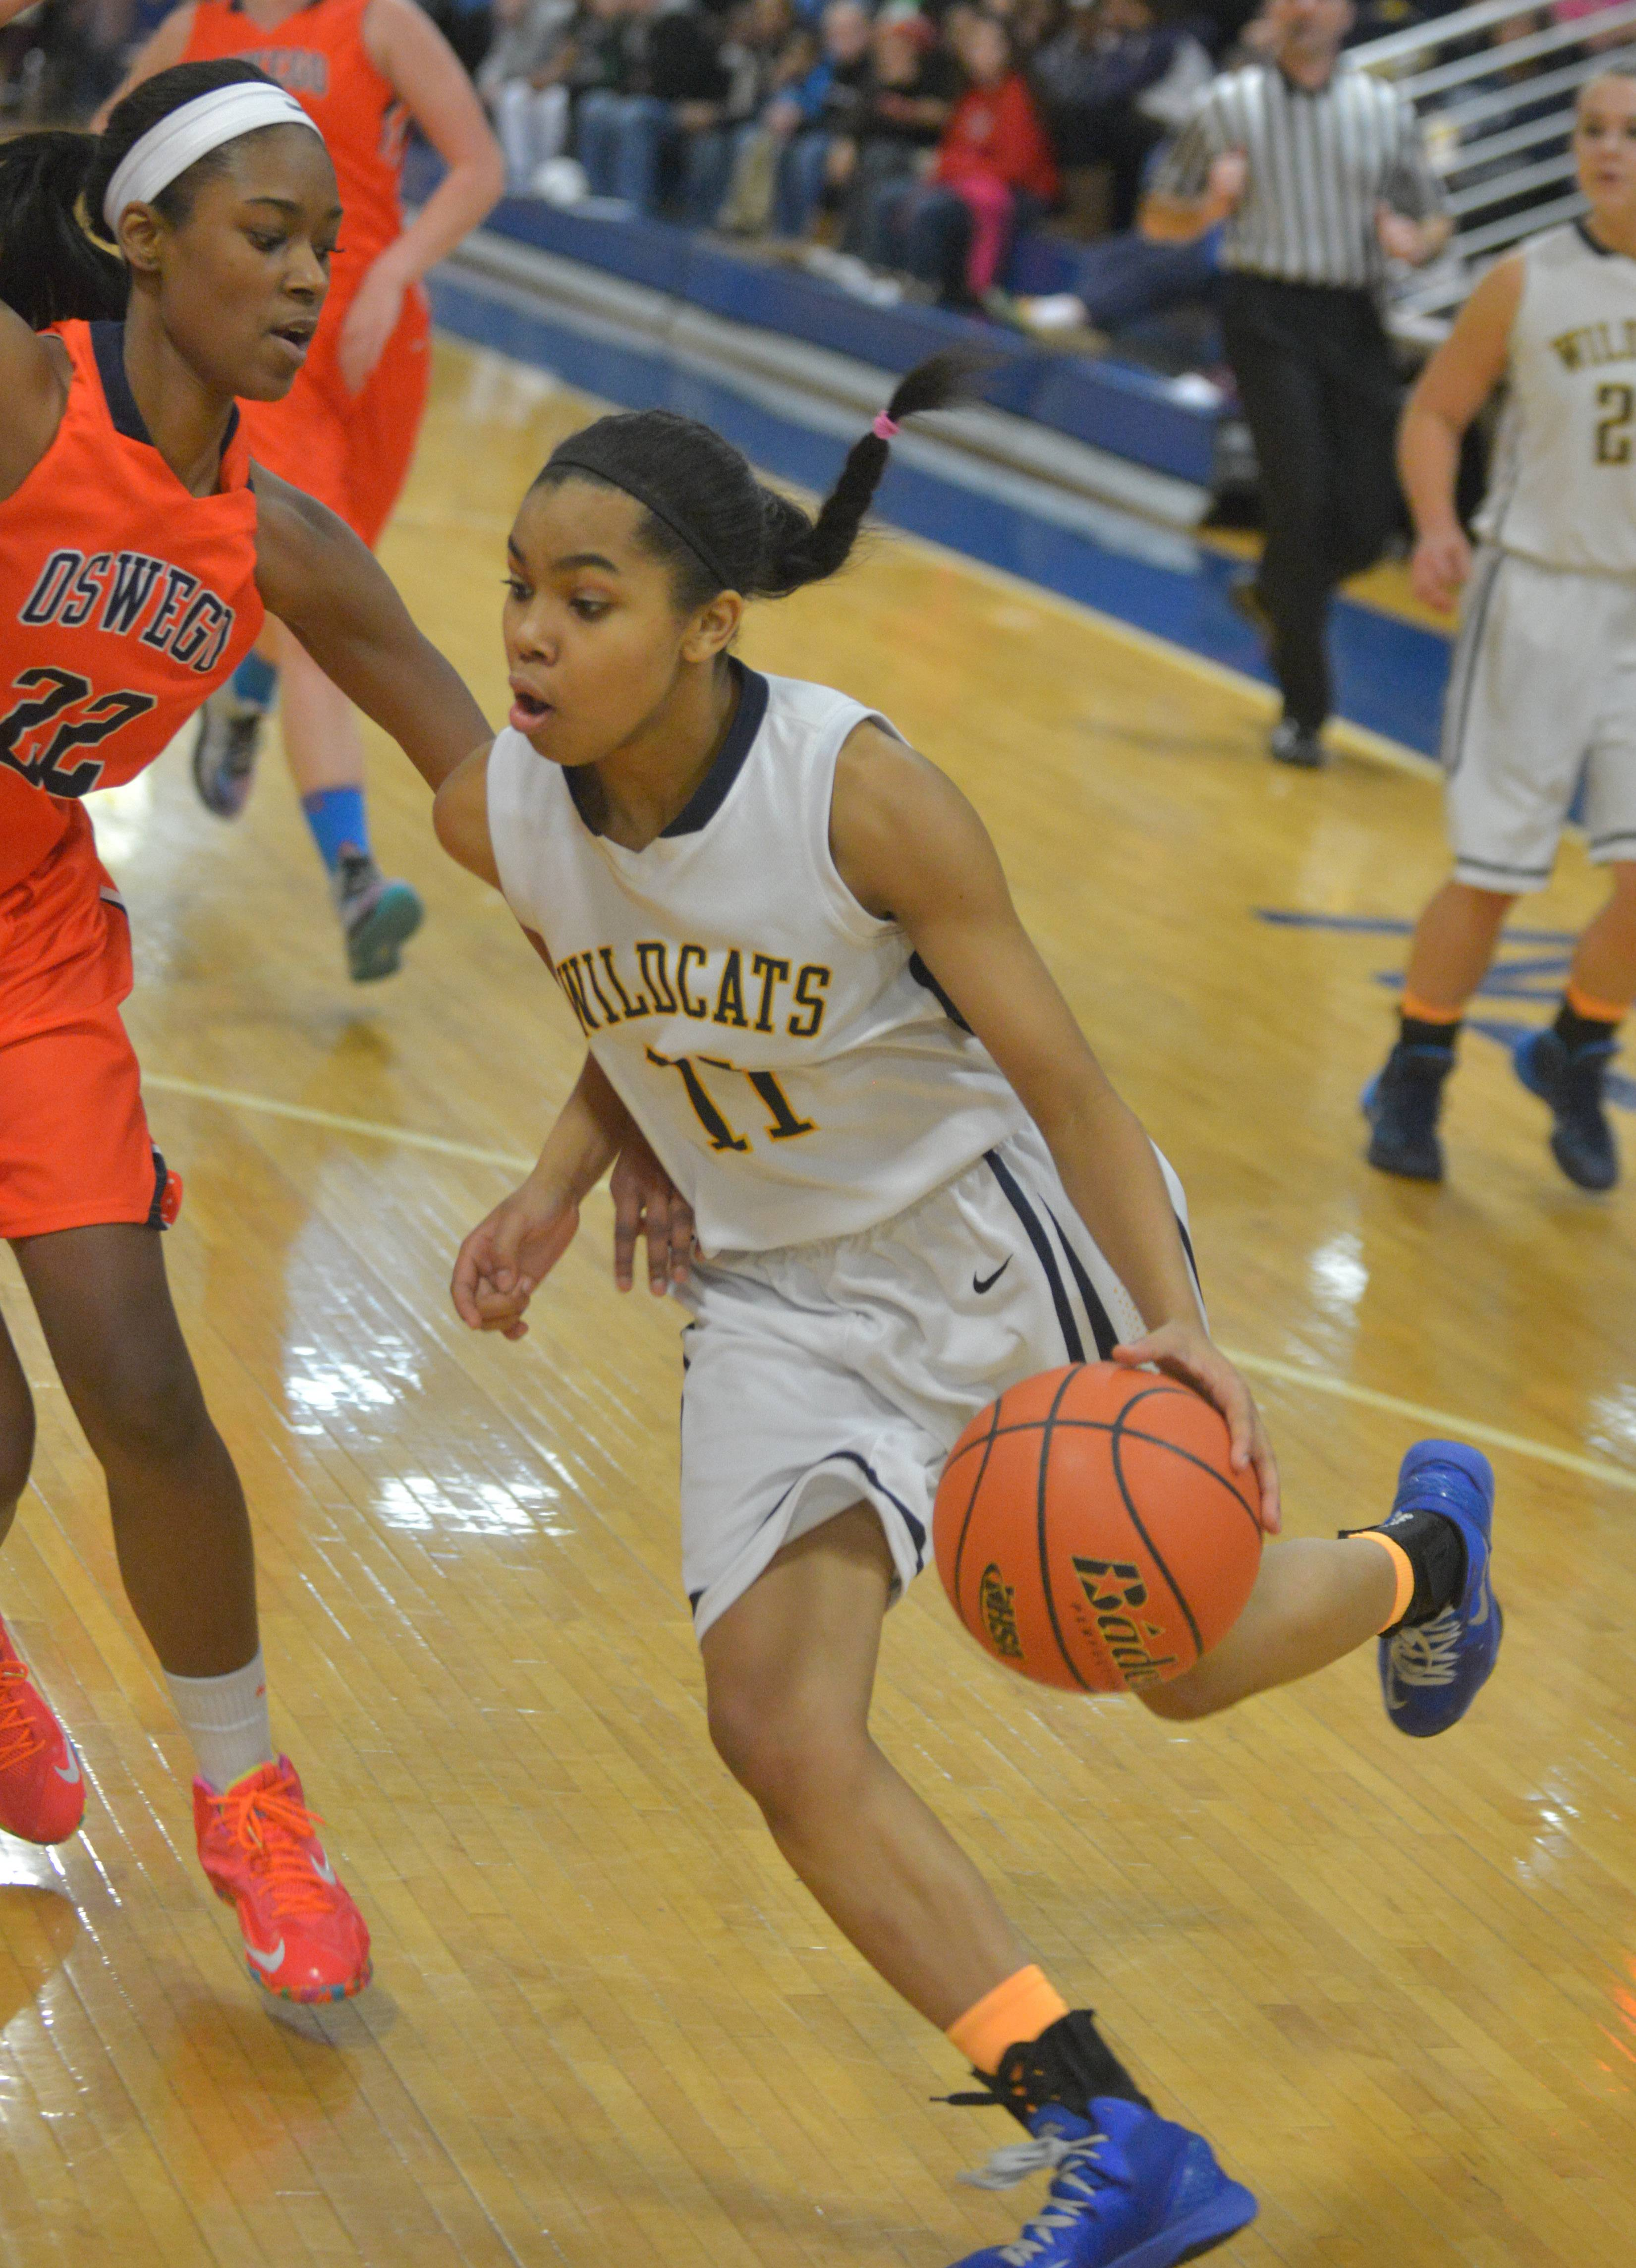 Neuqua Valley played Oswego in Class 4A sectional final girls basketball action at Joliet Central Thursday, Feb. 27.